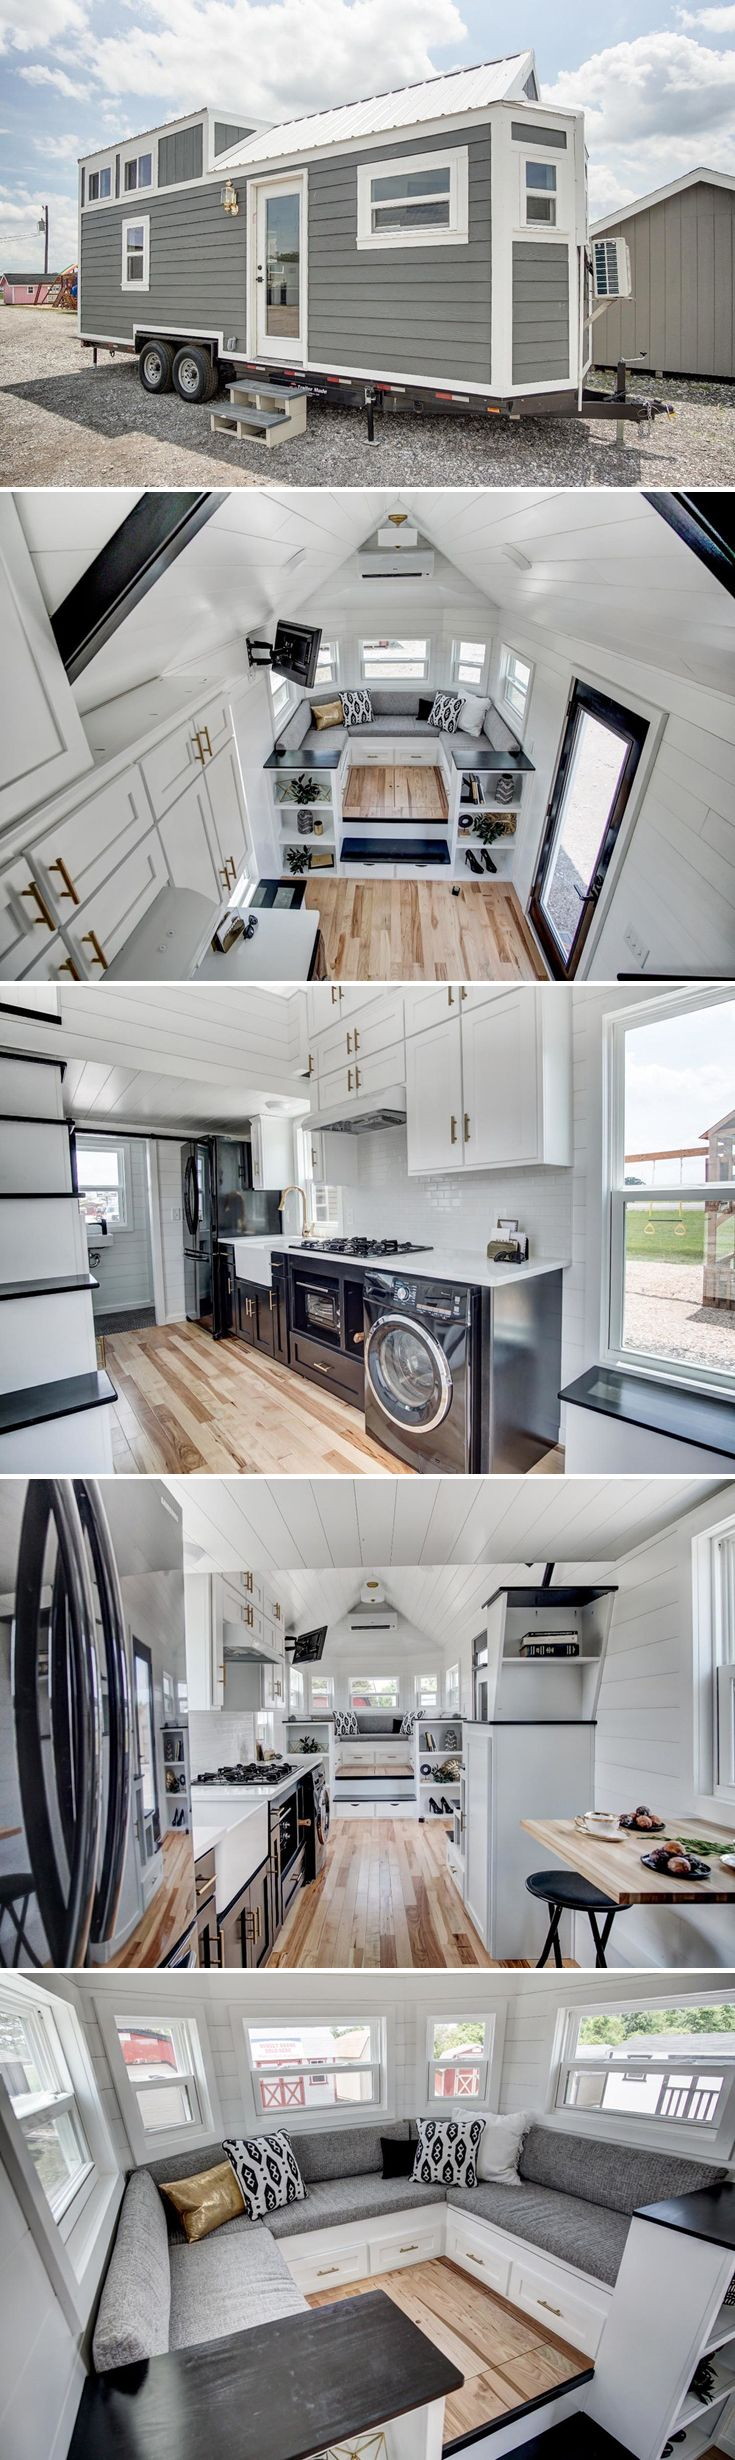 A 24 Modern Tiny House With Black Stainless Steel Appliances White Quartz Countertops And A Raised Couc Modern Tiny House Tiny House Nation Tiny House Plans